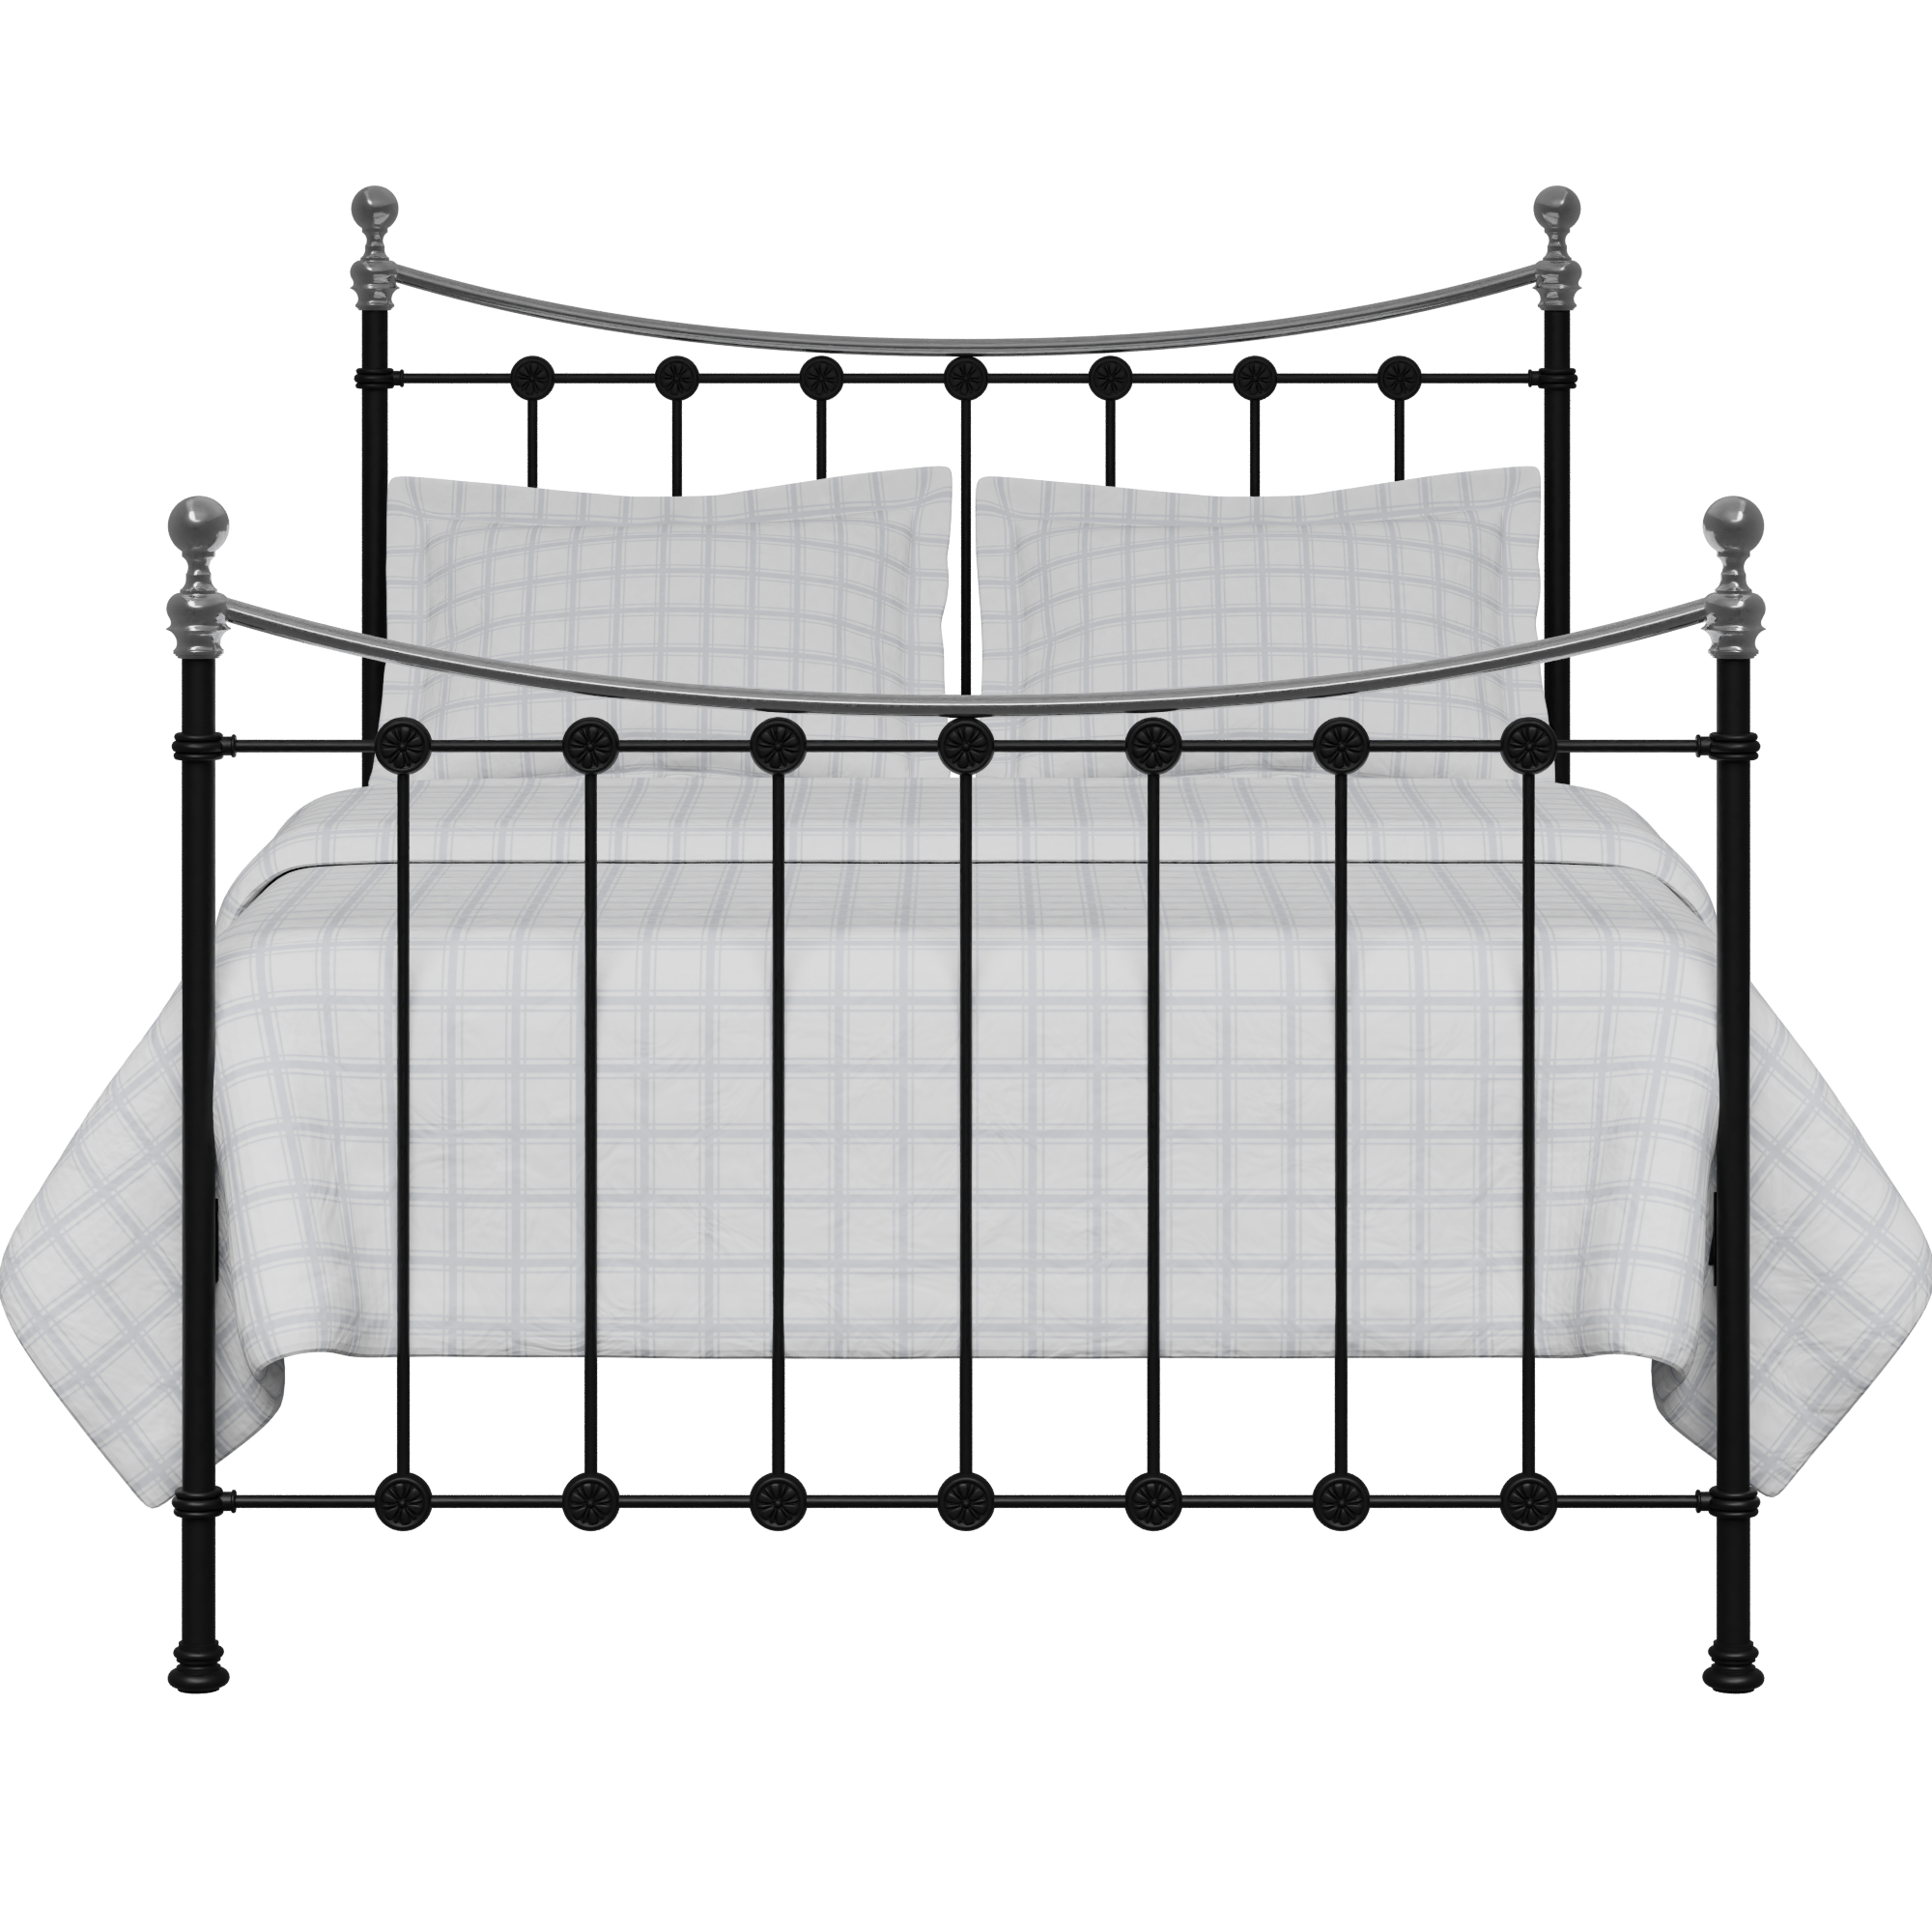 Carrick Chromo iron/metal bed in black